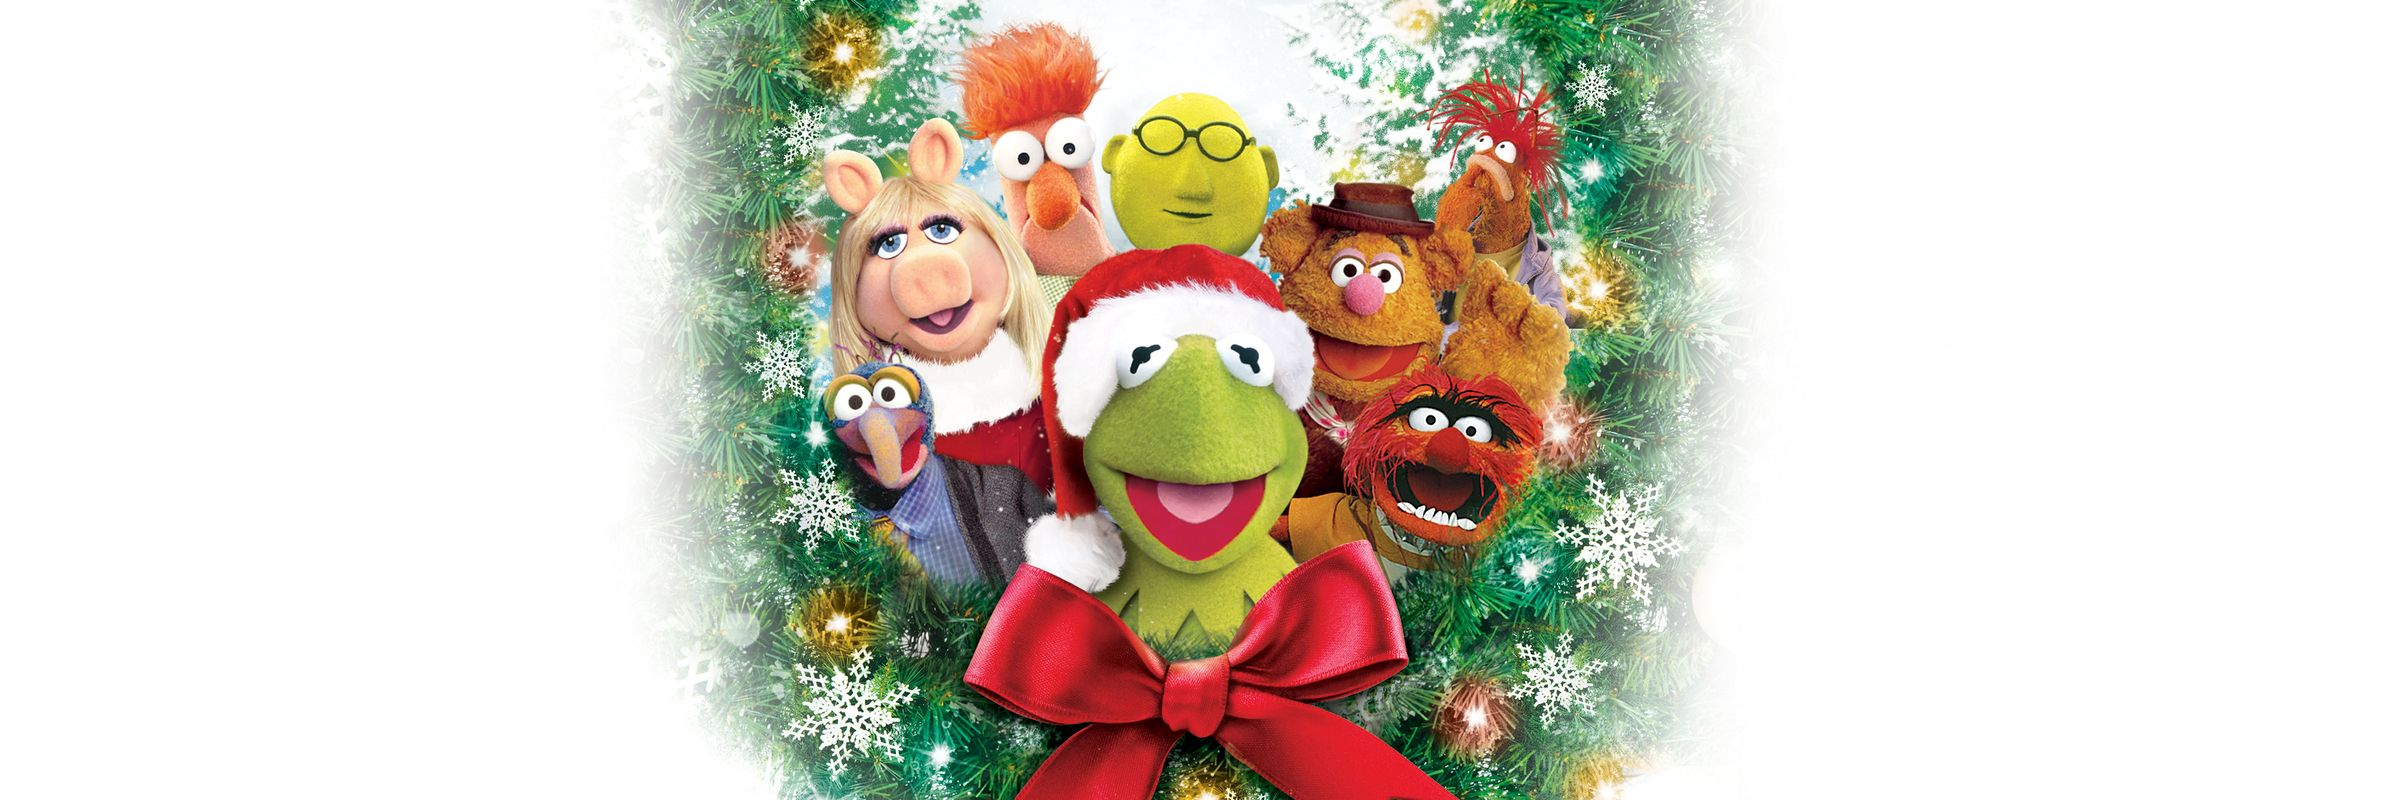 Muppet Christmas.It S A Very Merry Muppet Christmas Movie Full Movie